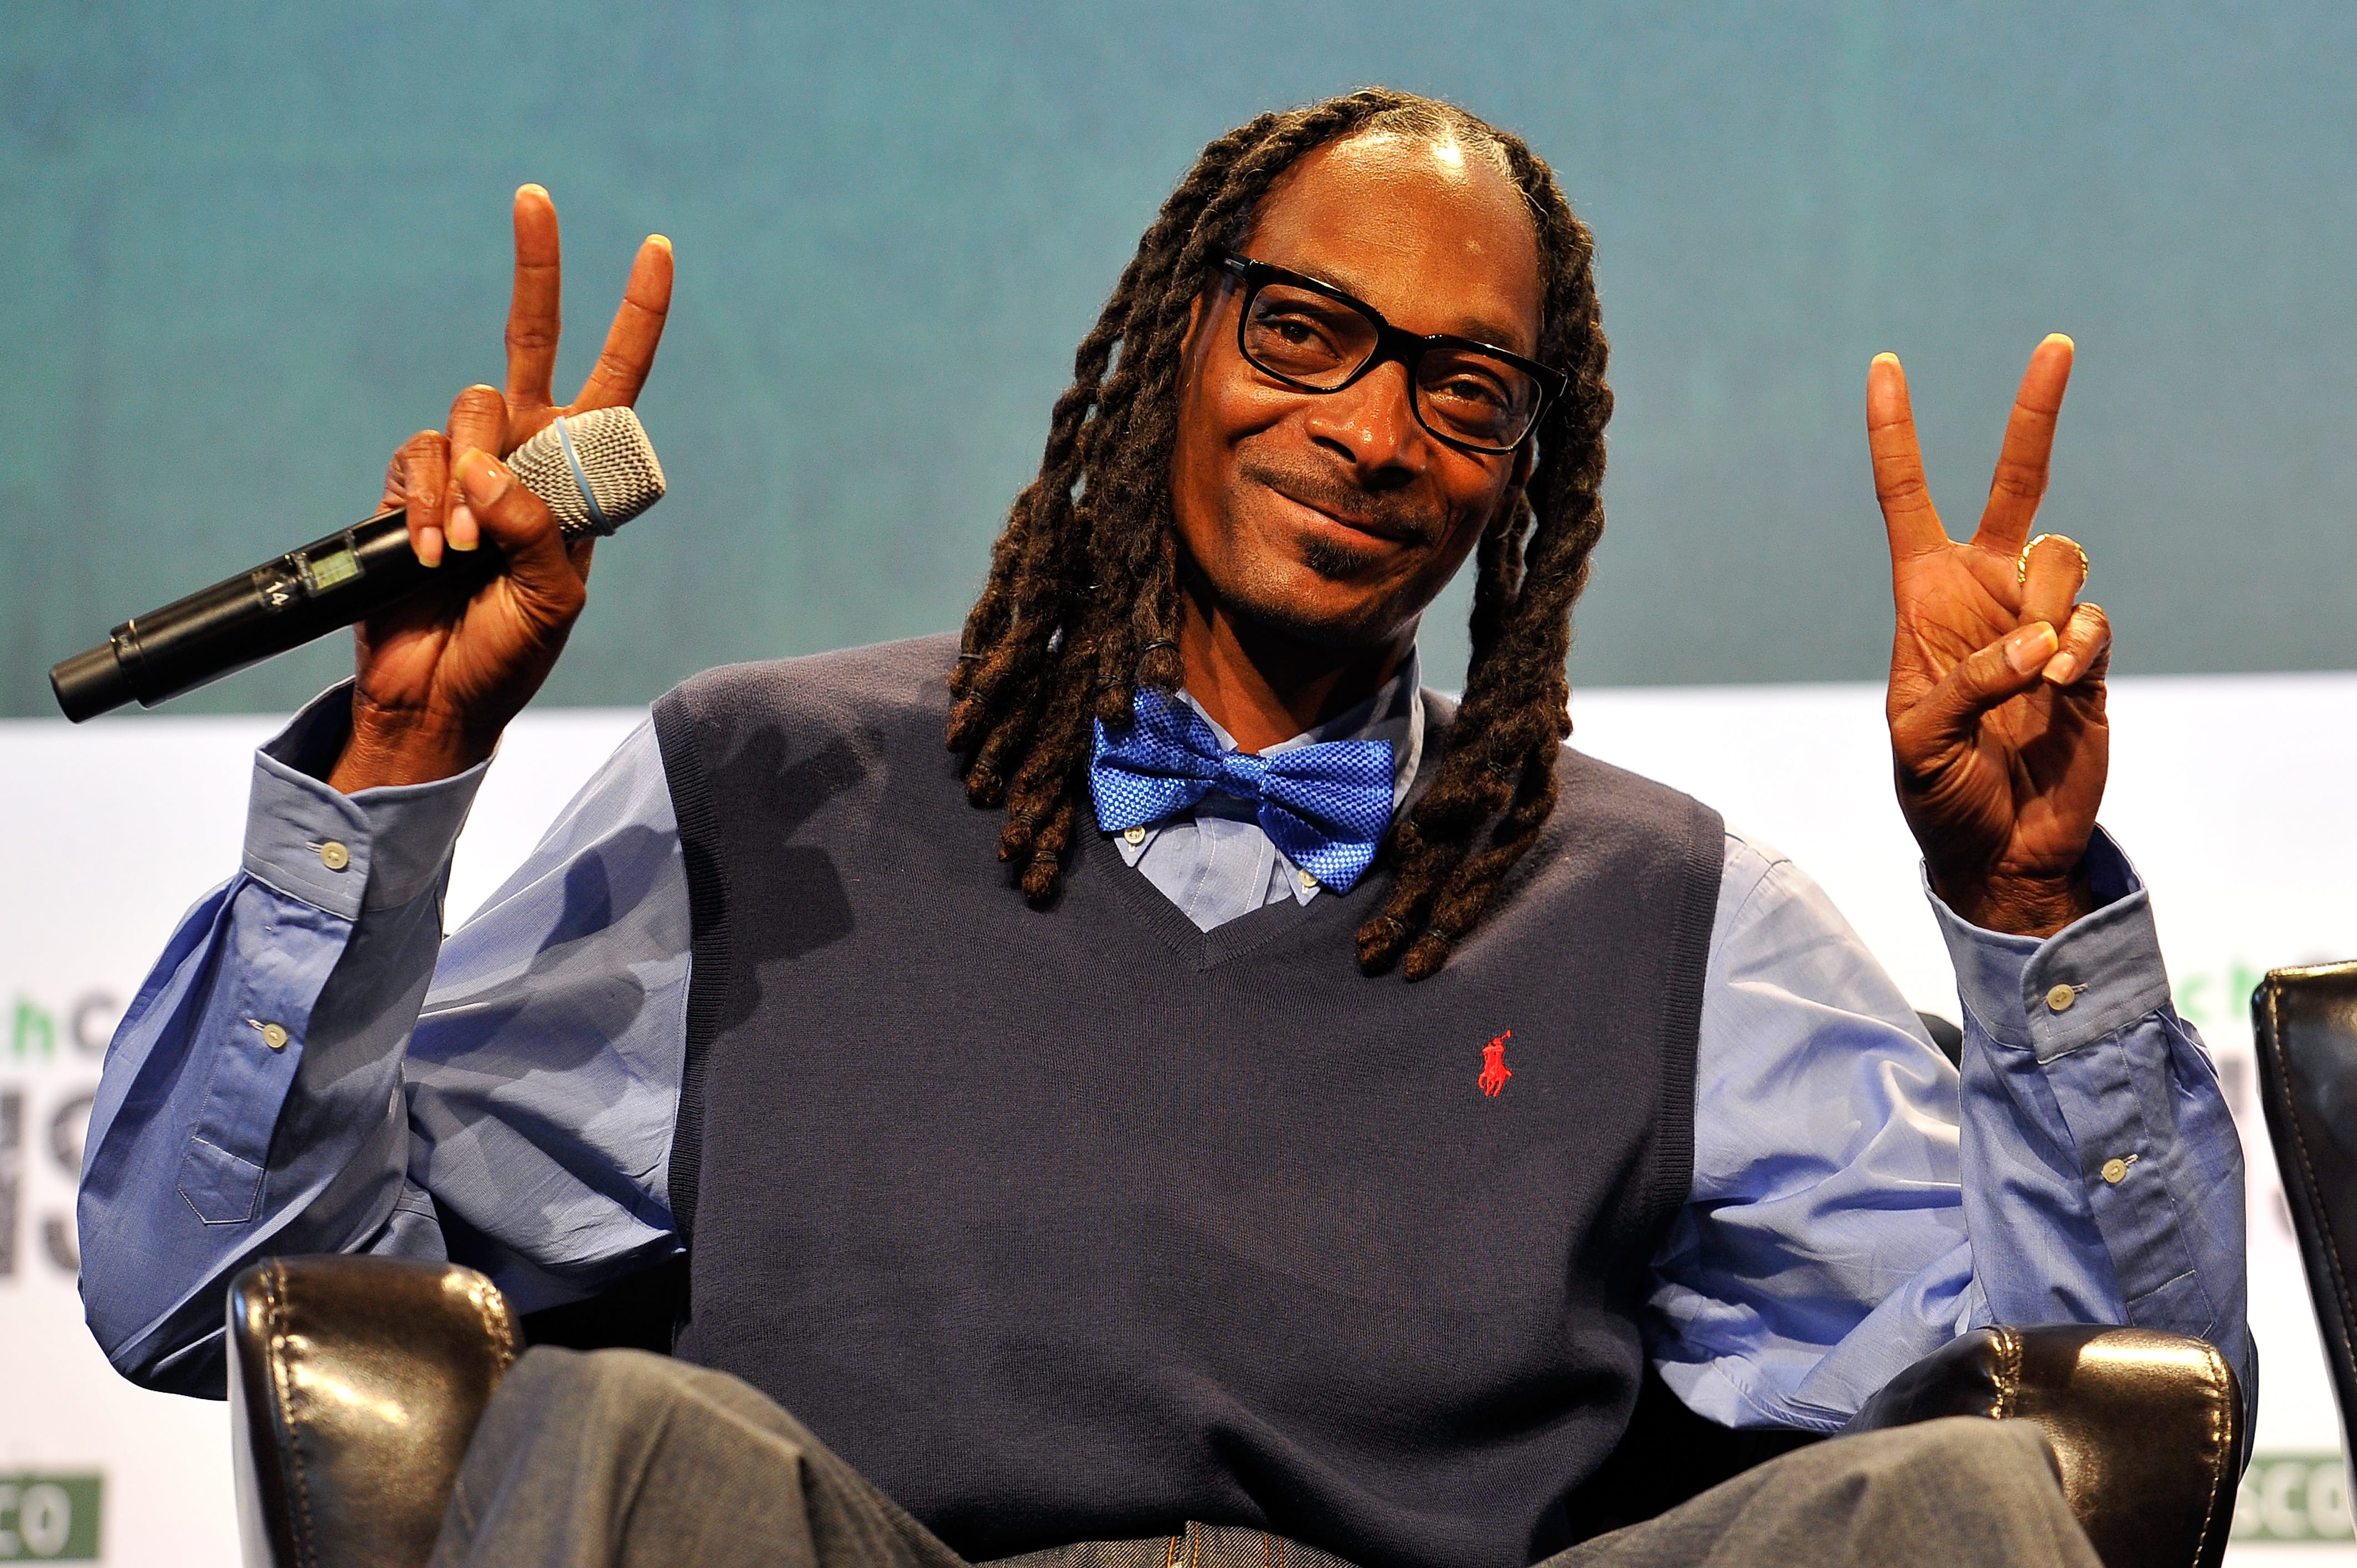 Snoop Dogg Download